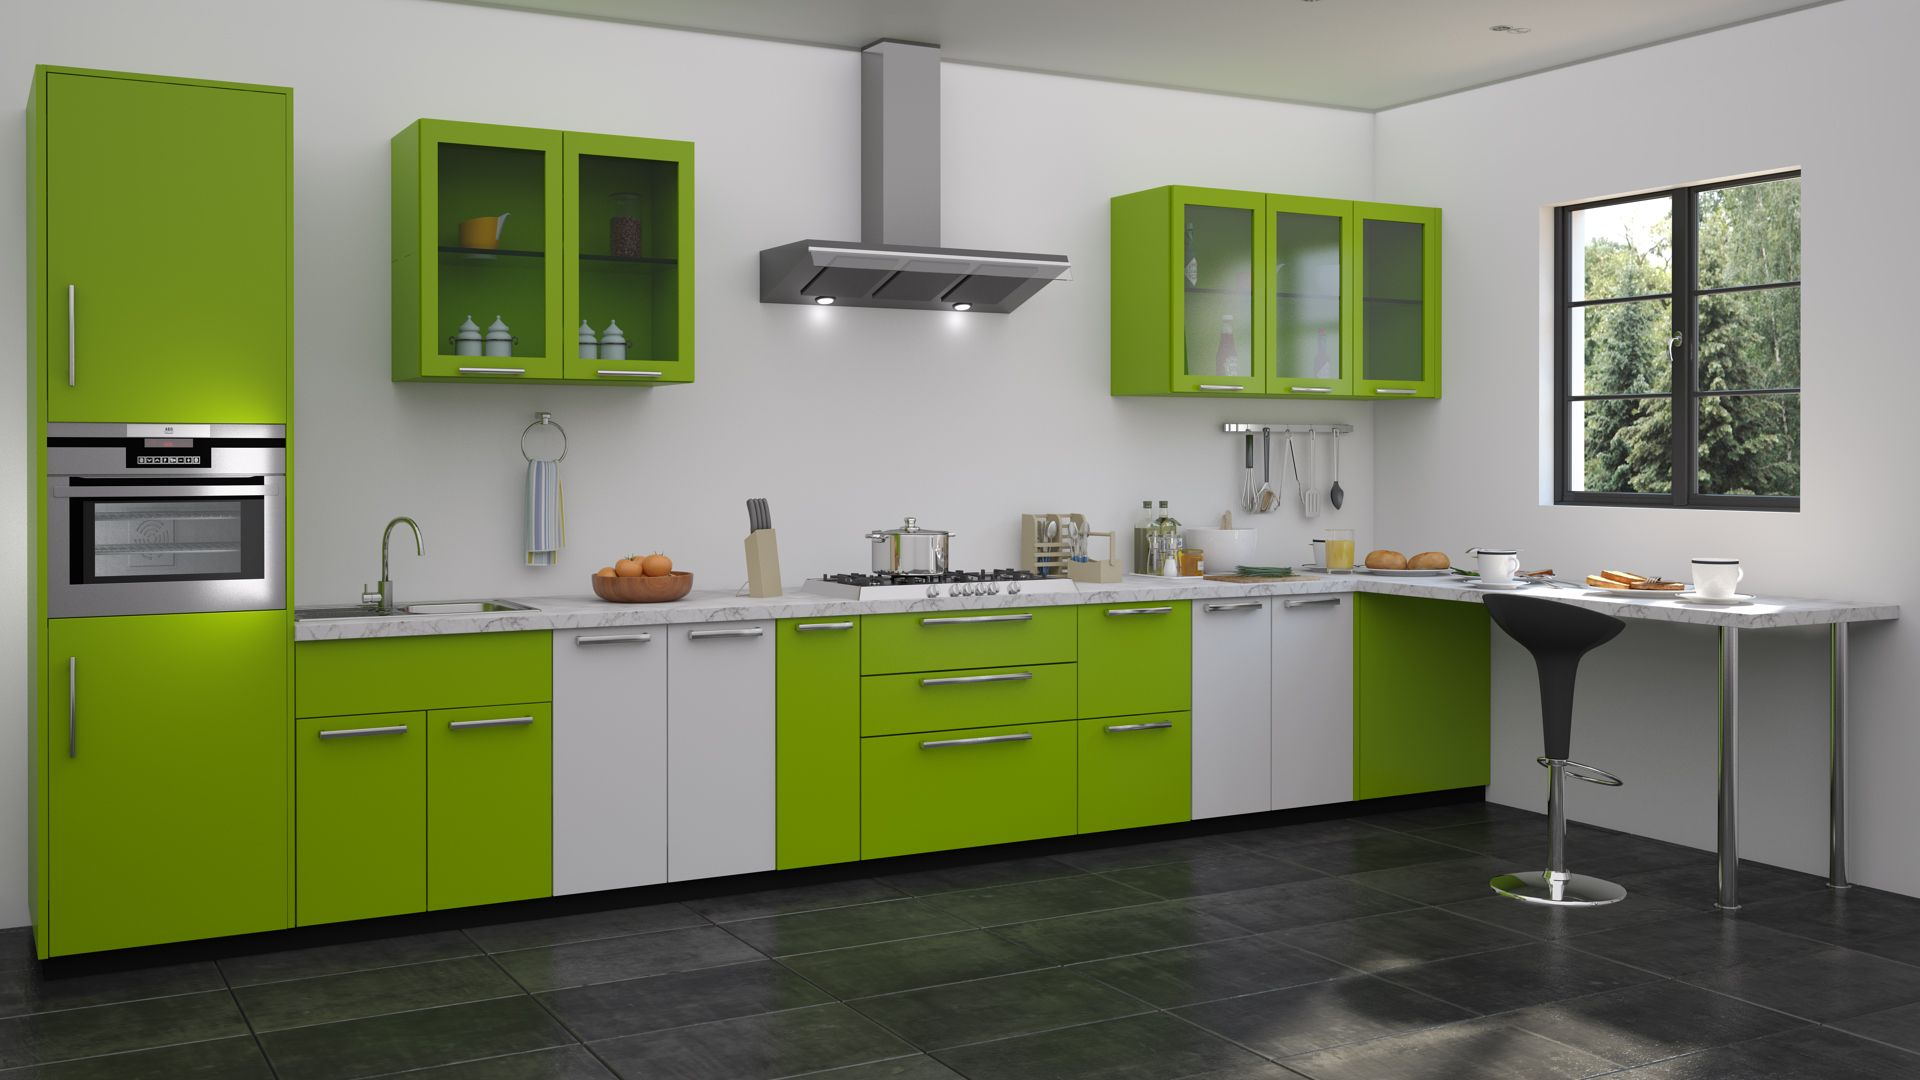 Green modular kitchen designs straight kitchen designs for Green and white kitchen designs